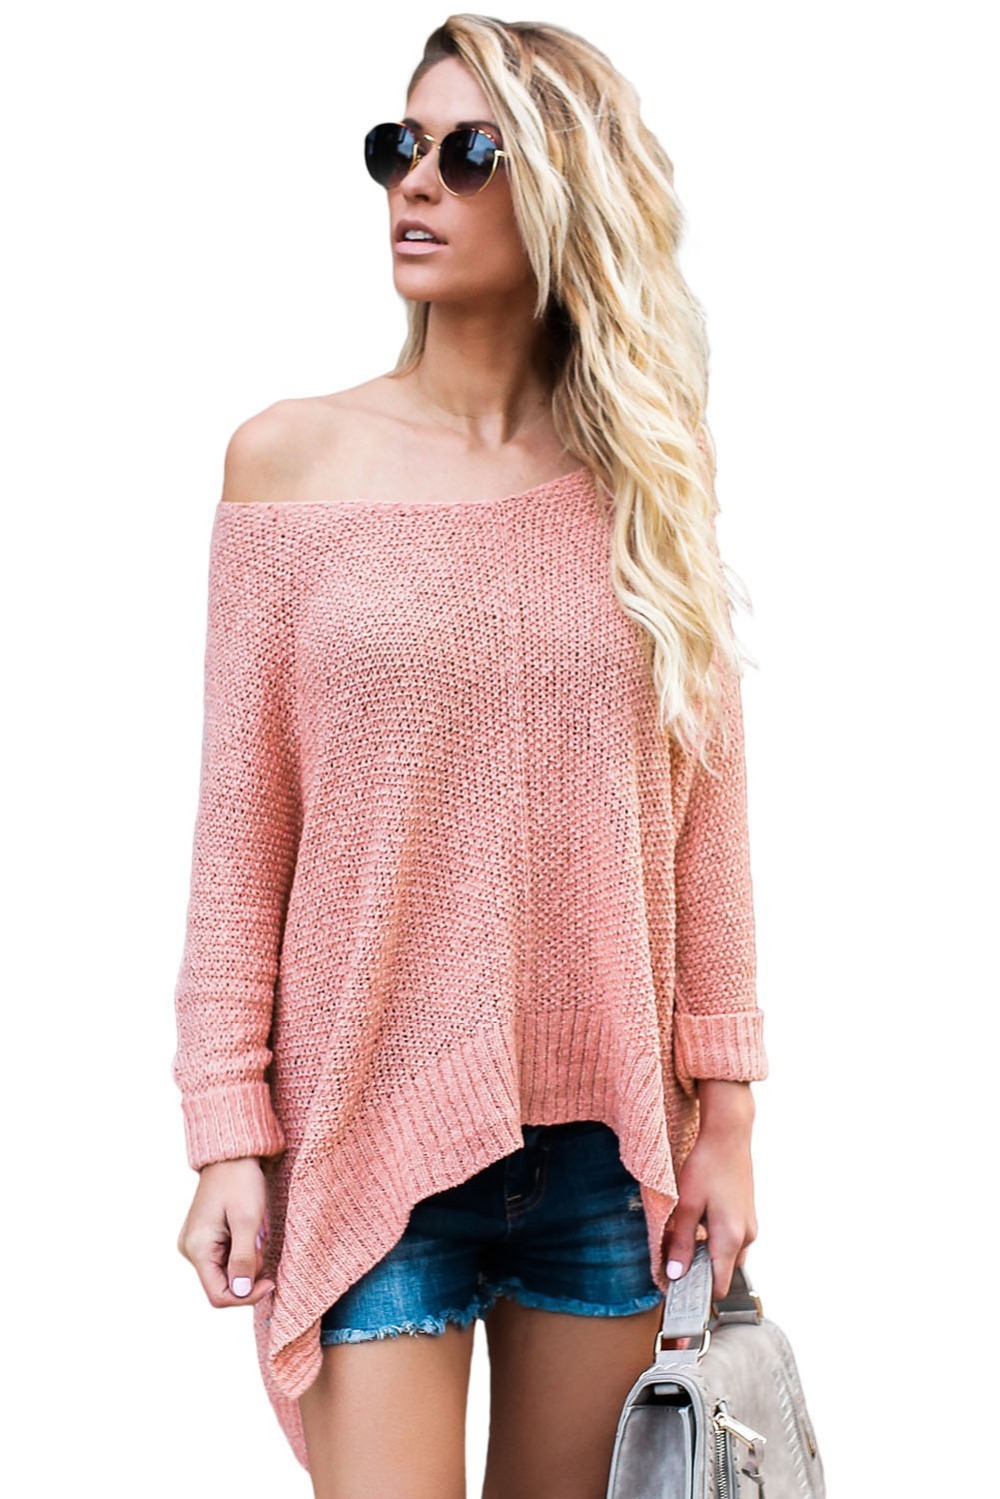 Pink-Oversized-Knit-High-low-Slit-Side-Sweater-LC27680-10-2